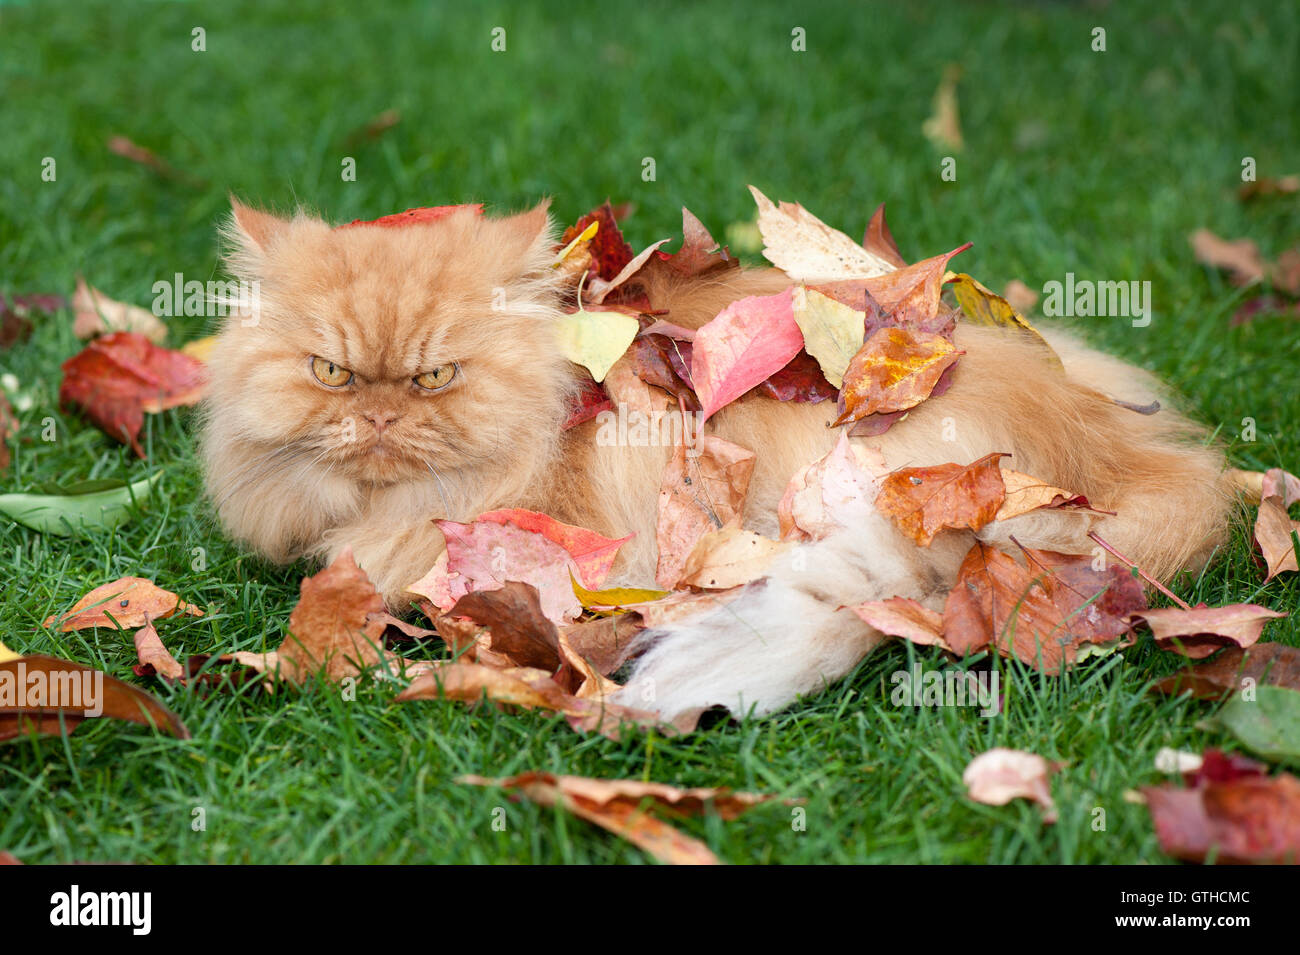 Persian cat in autumn leaves - Stock Image